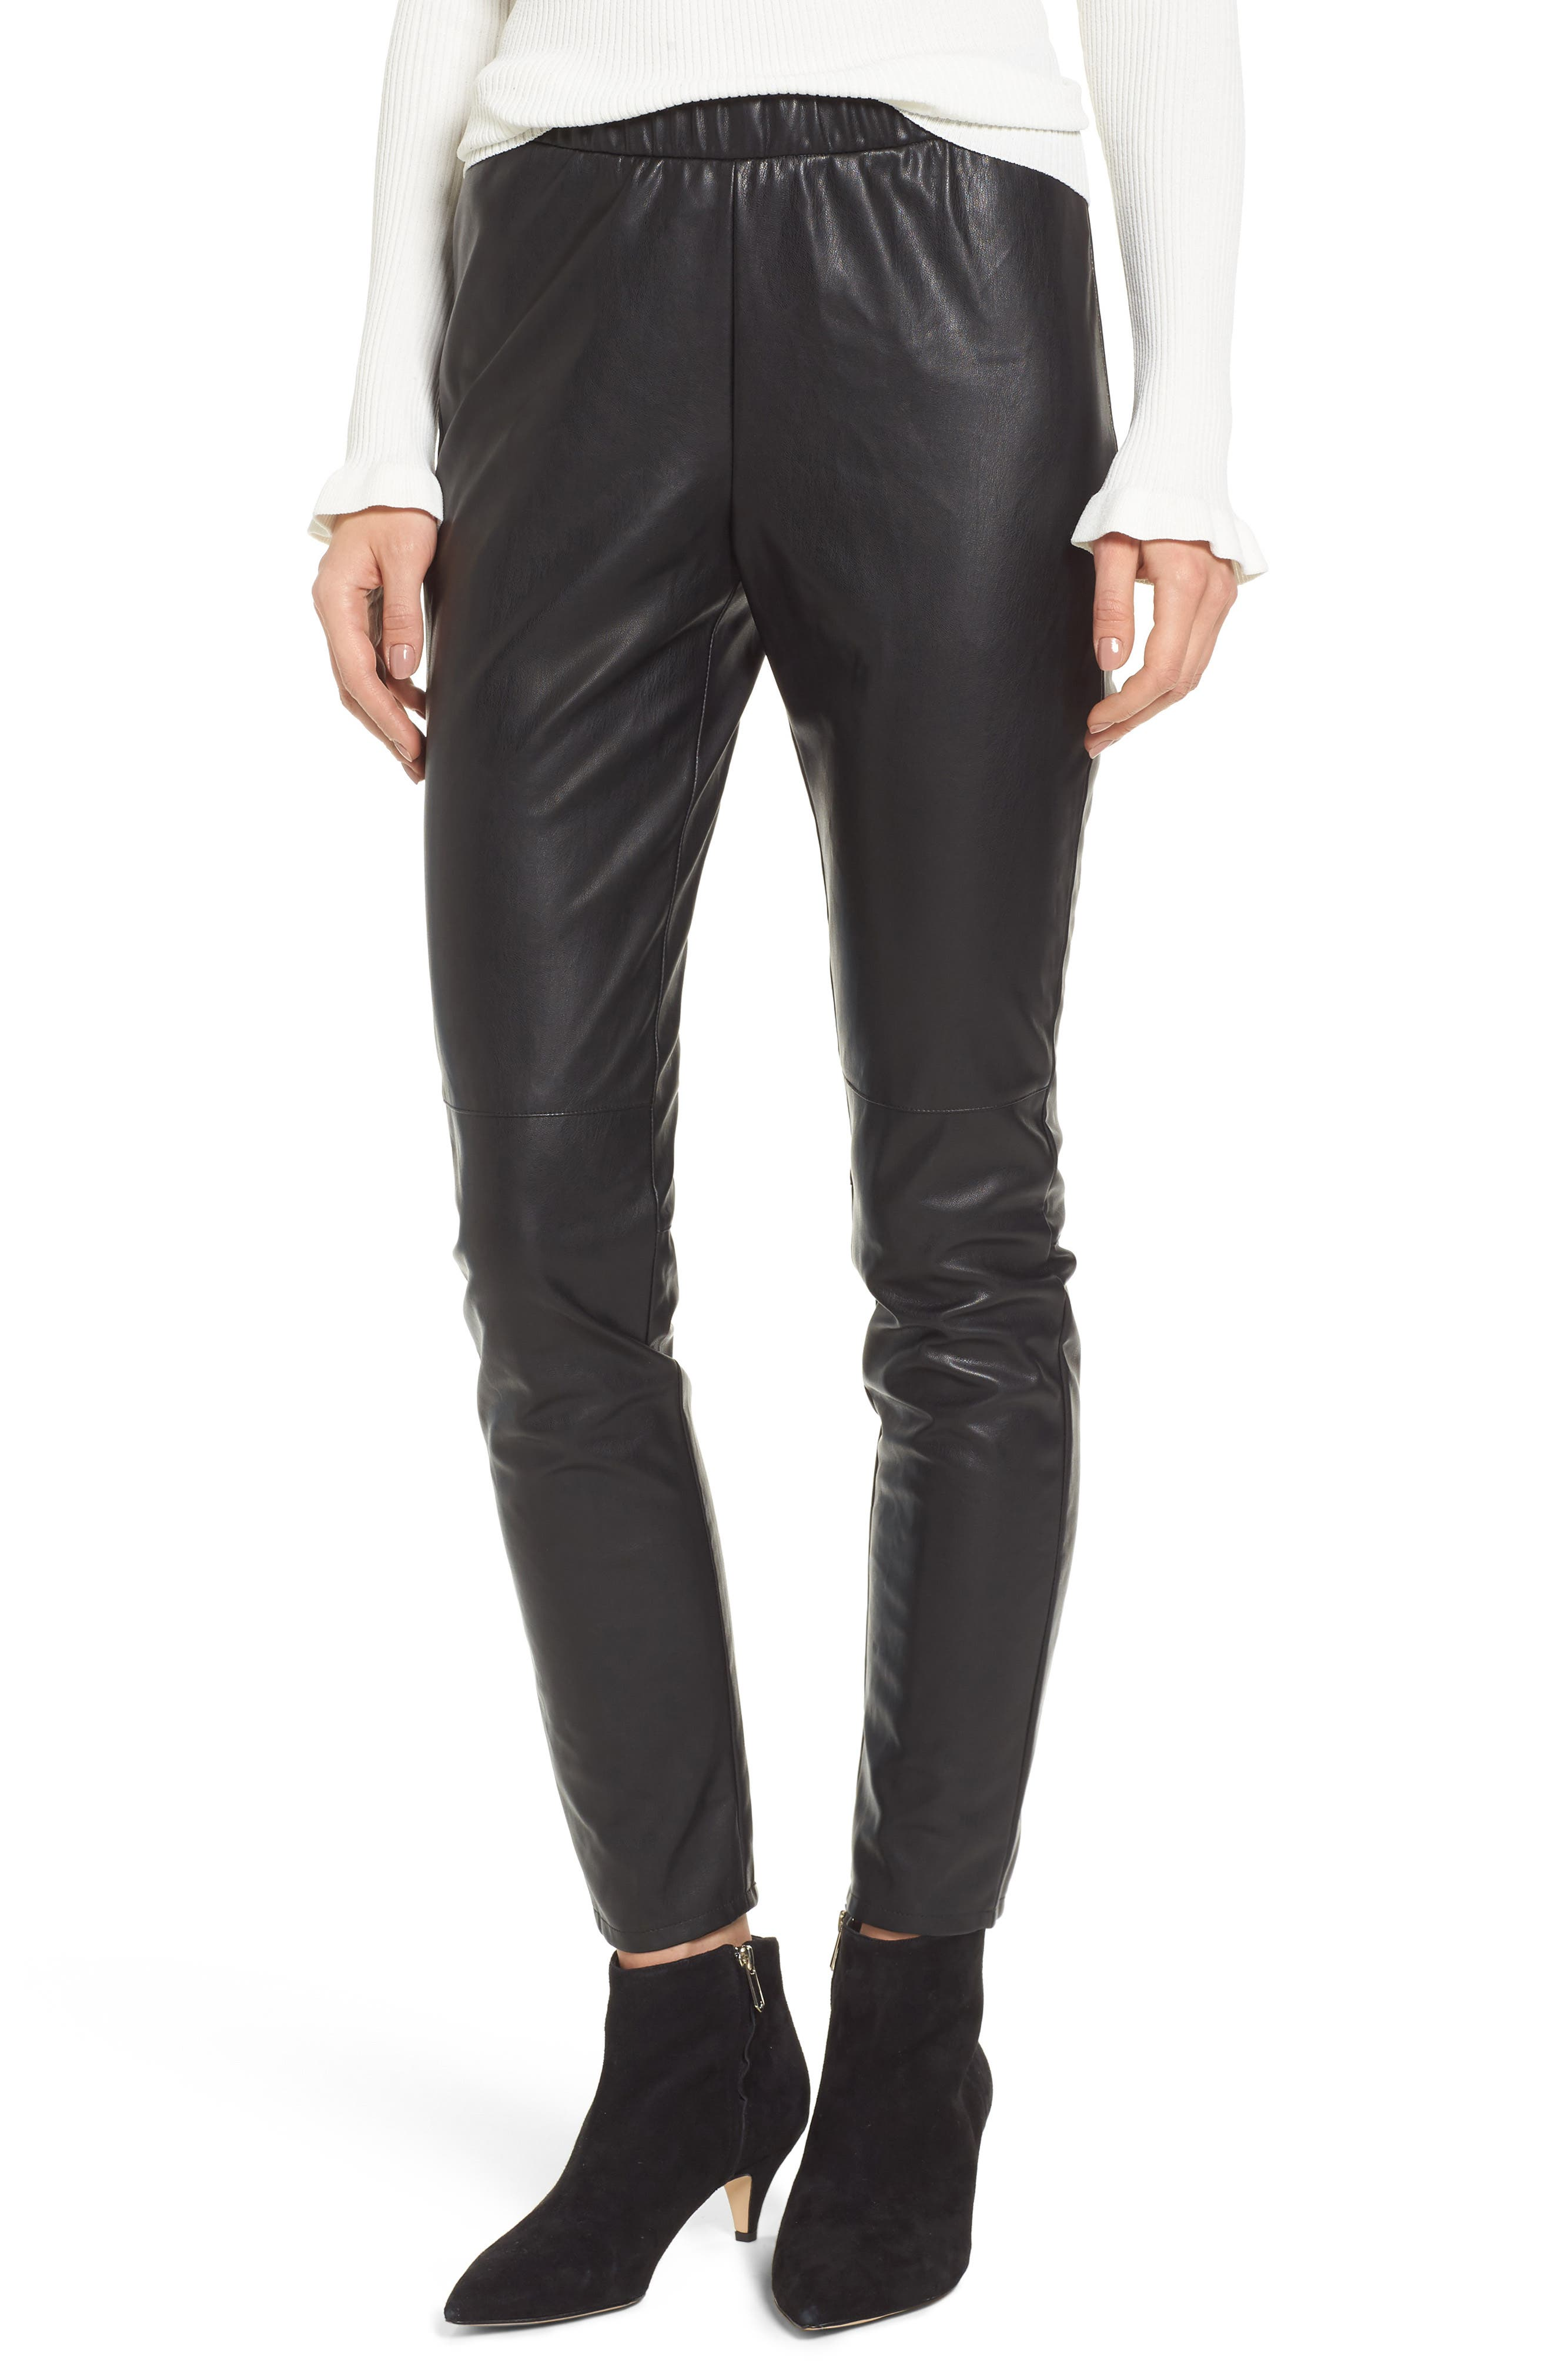 cupcakes and cashmere Zowie Faux Leather Pants